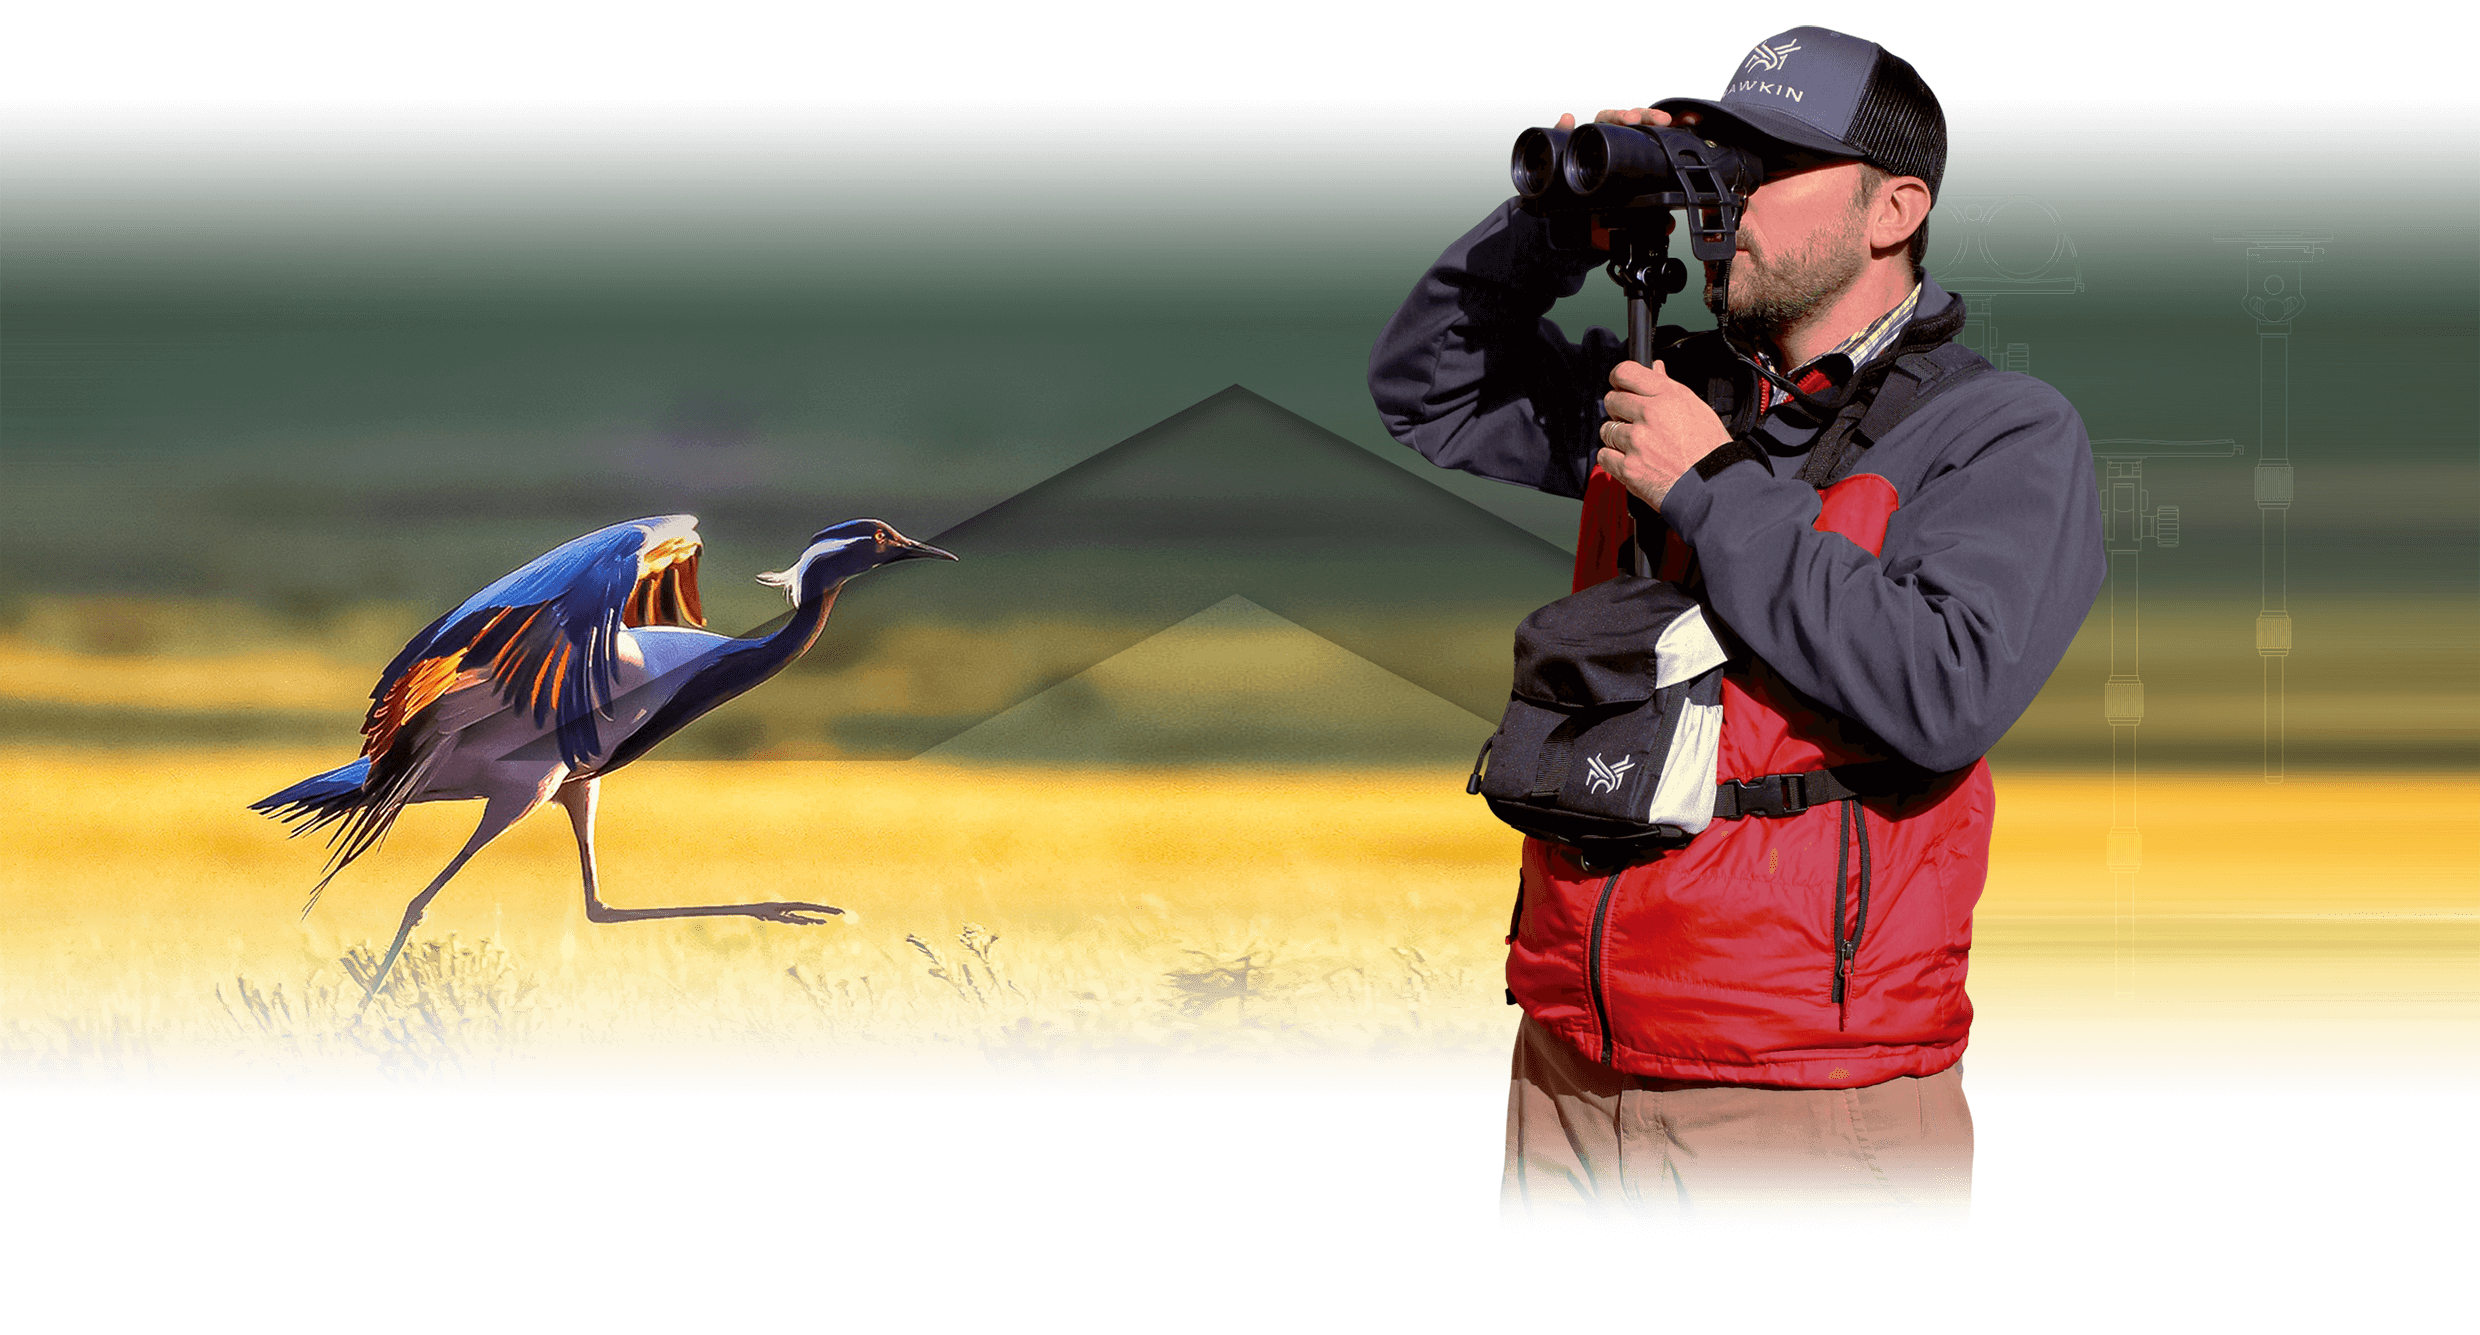 Homepage slide for Hawkin Birding - Billings, Montana